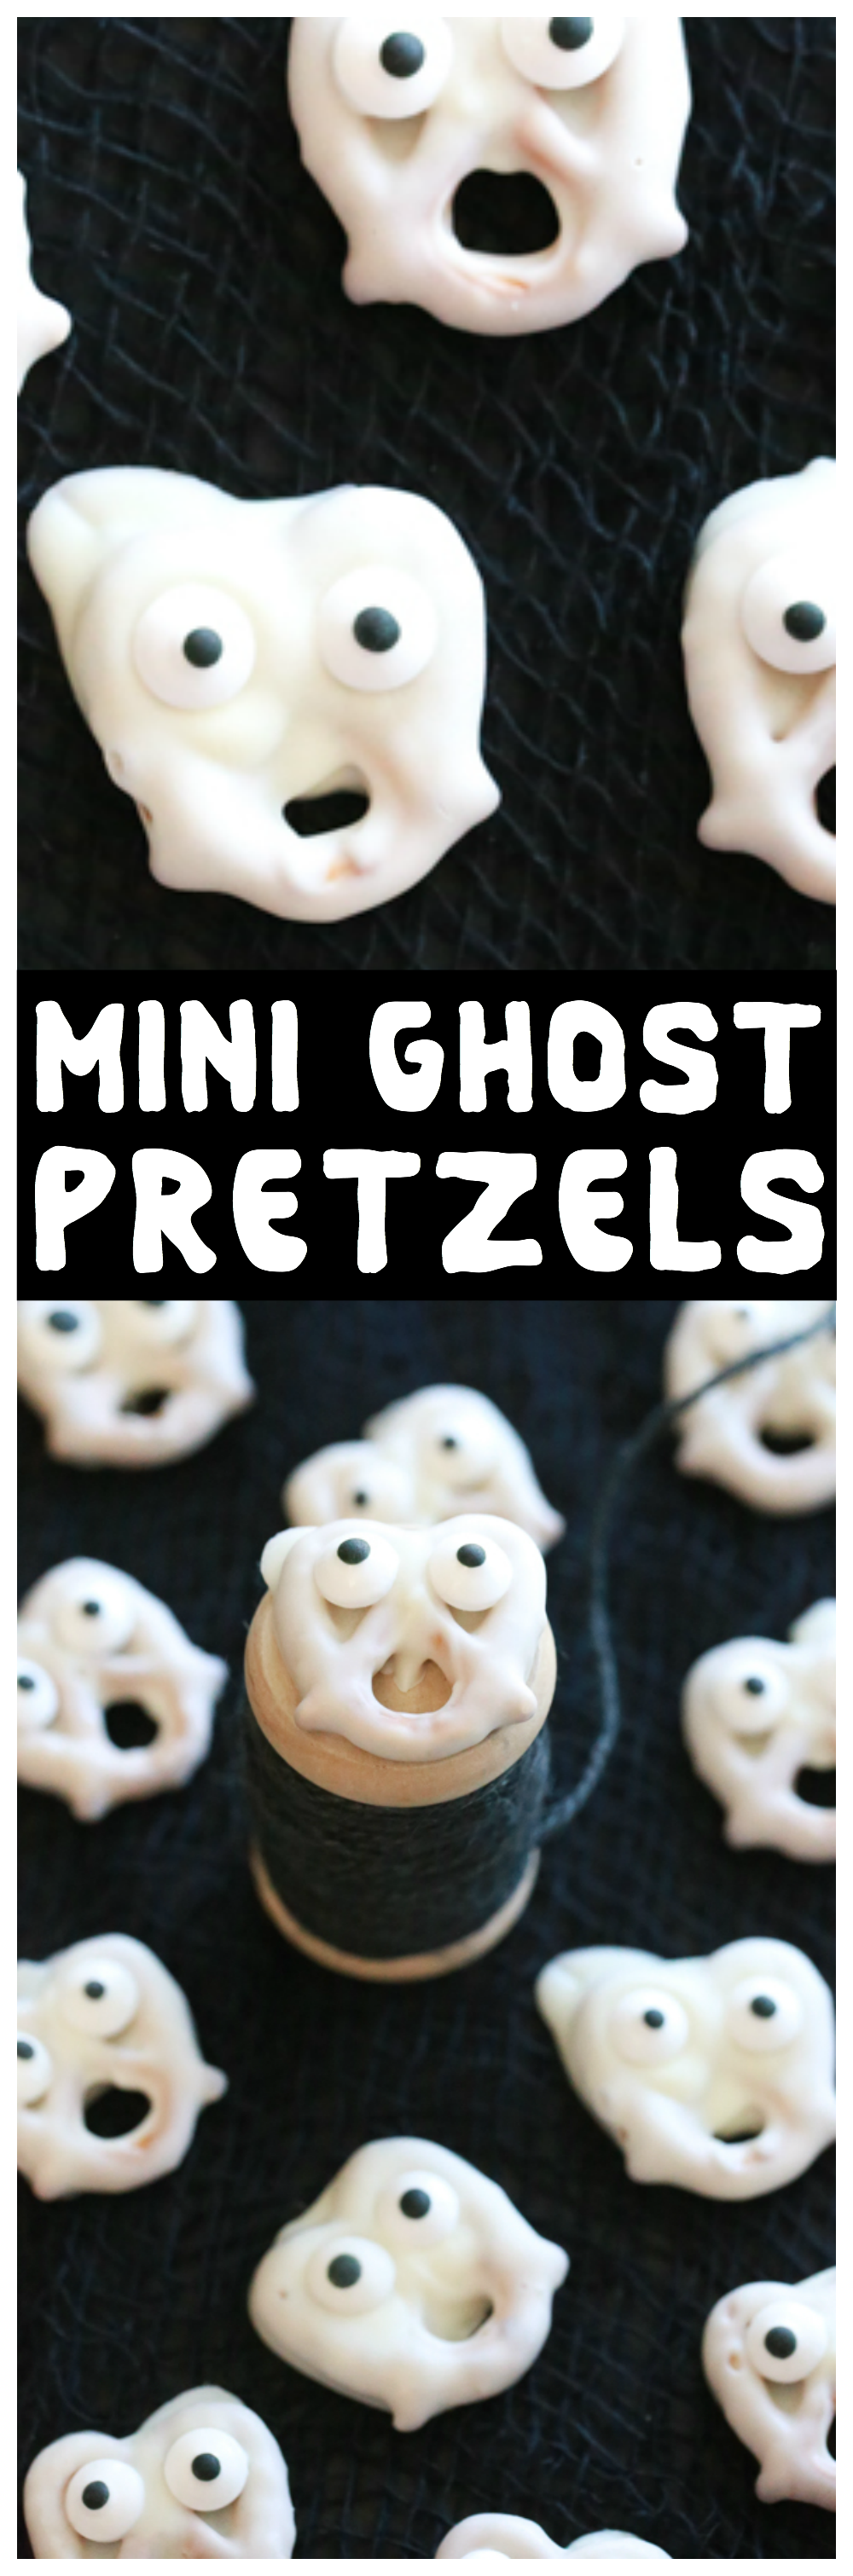 Turn ordinary pretzels into these spooky Mini Ghost Pretzels using just three ingredients. They're so easy to make it's almost scary!